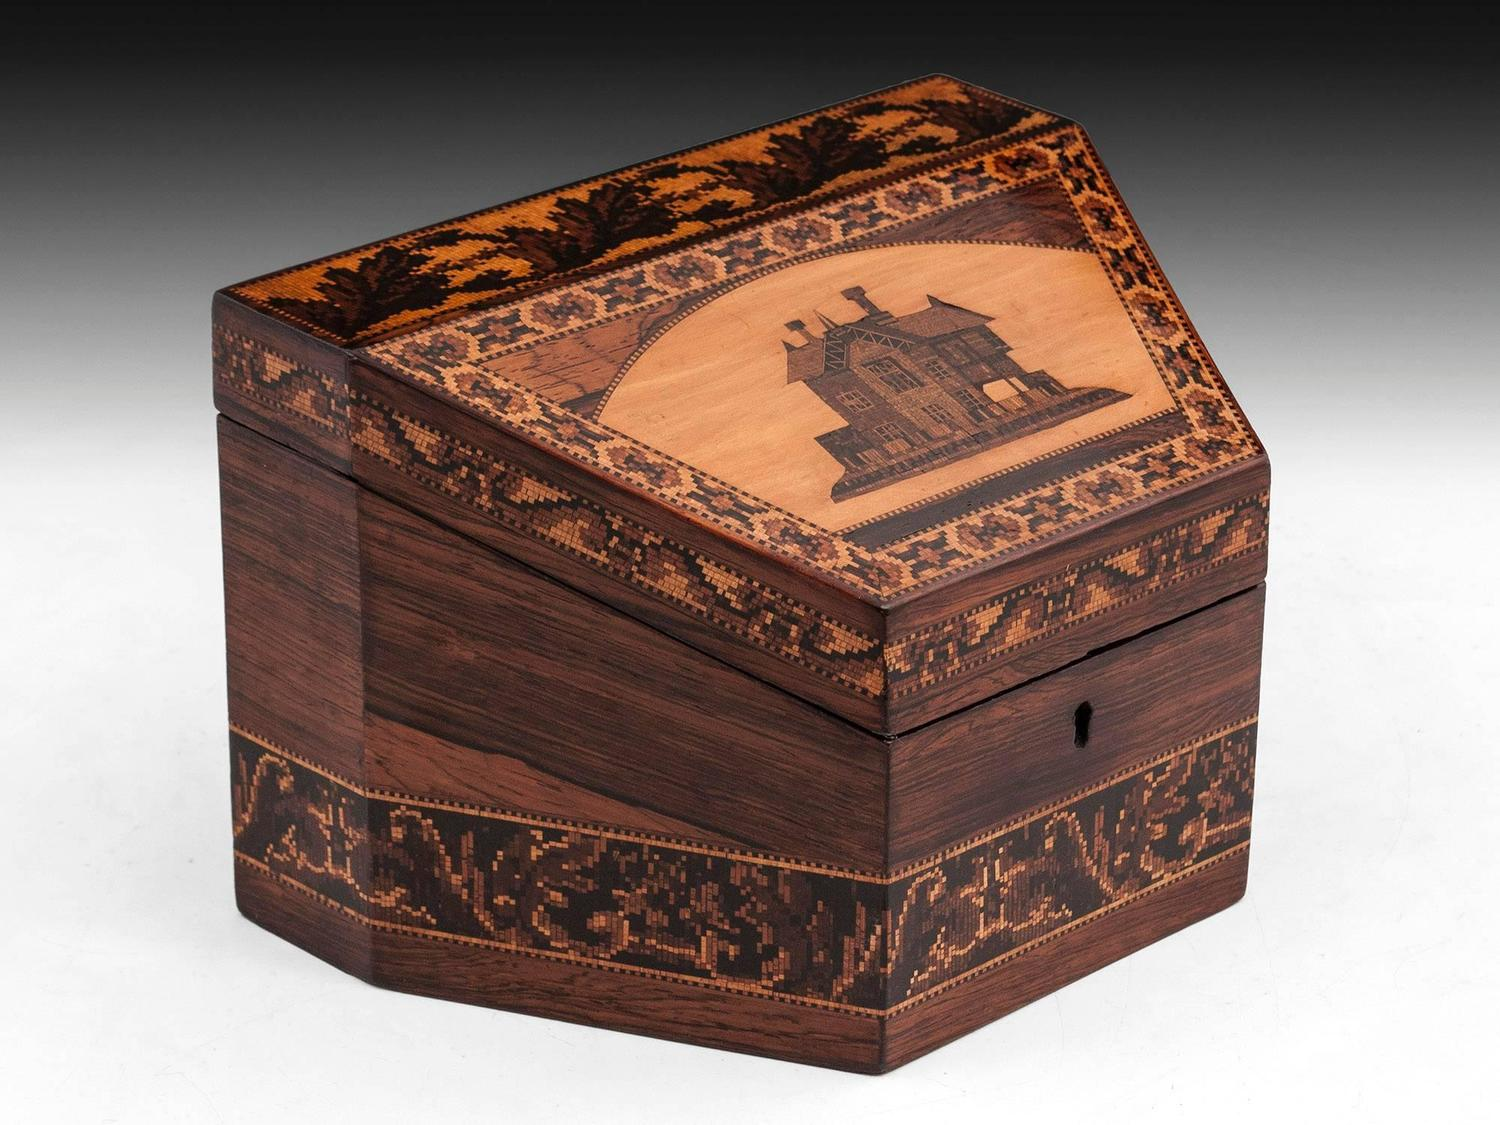 Tunbridge ware stationery box for sale at stdibs